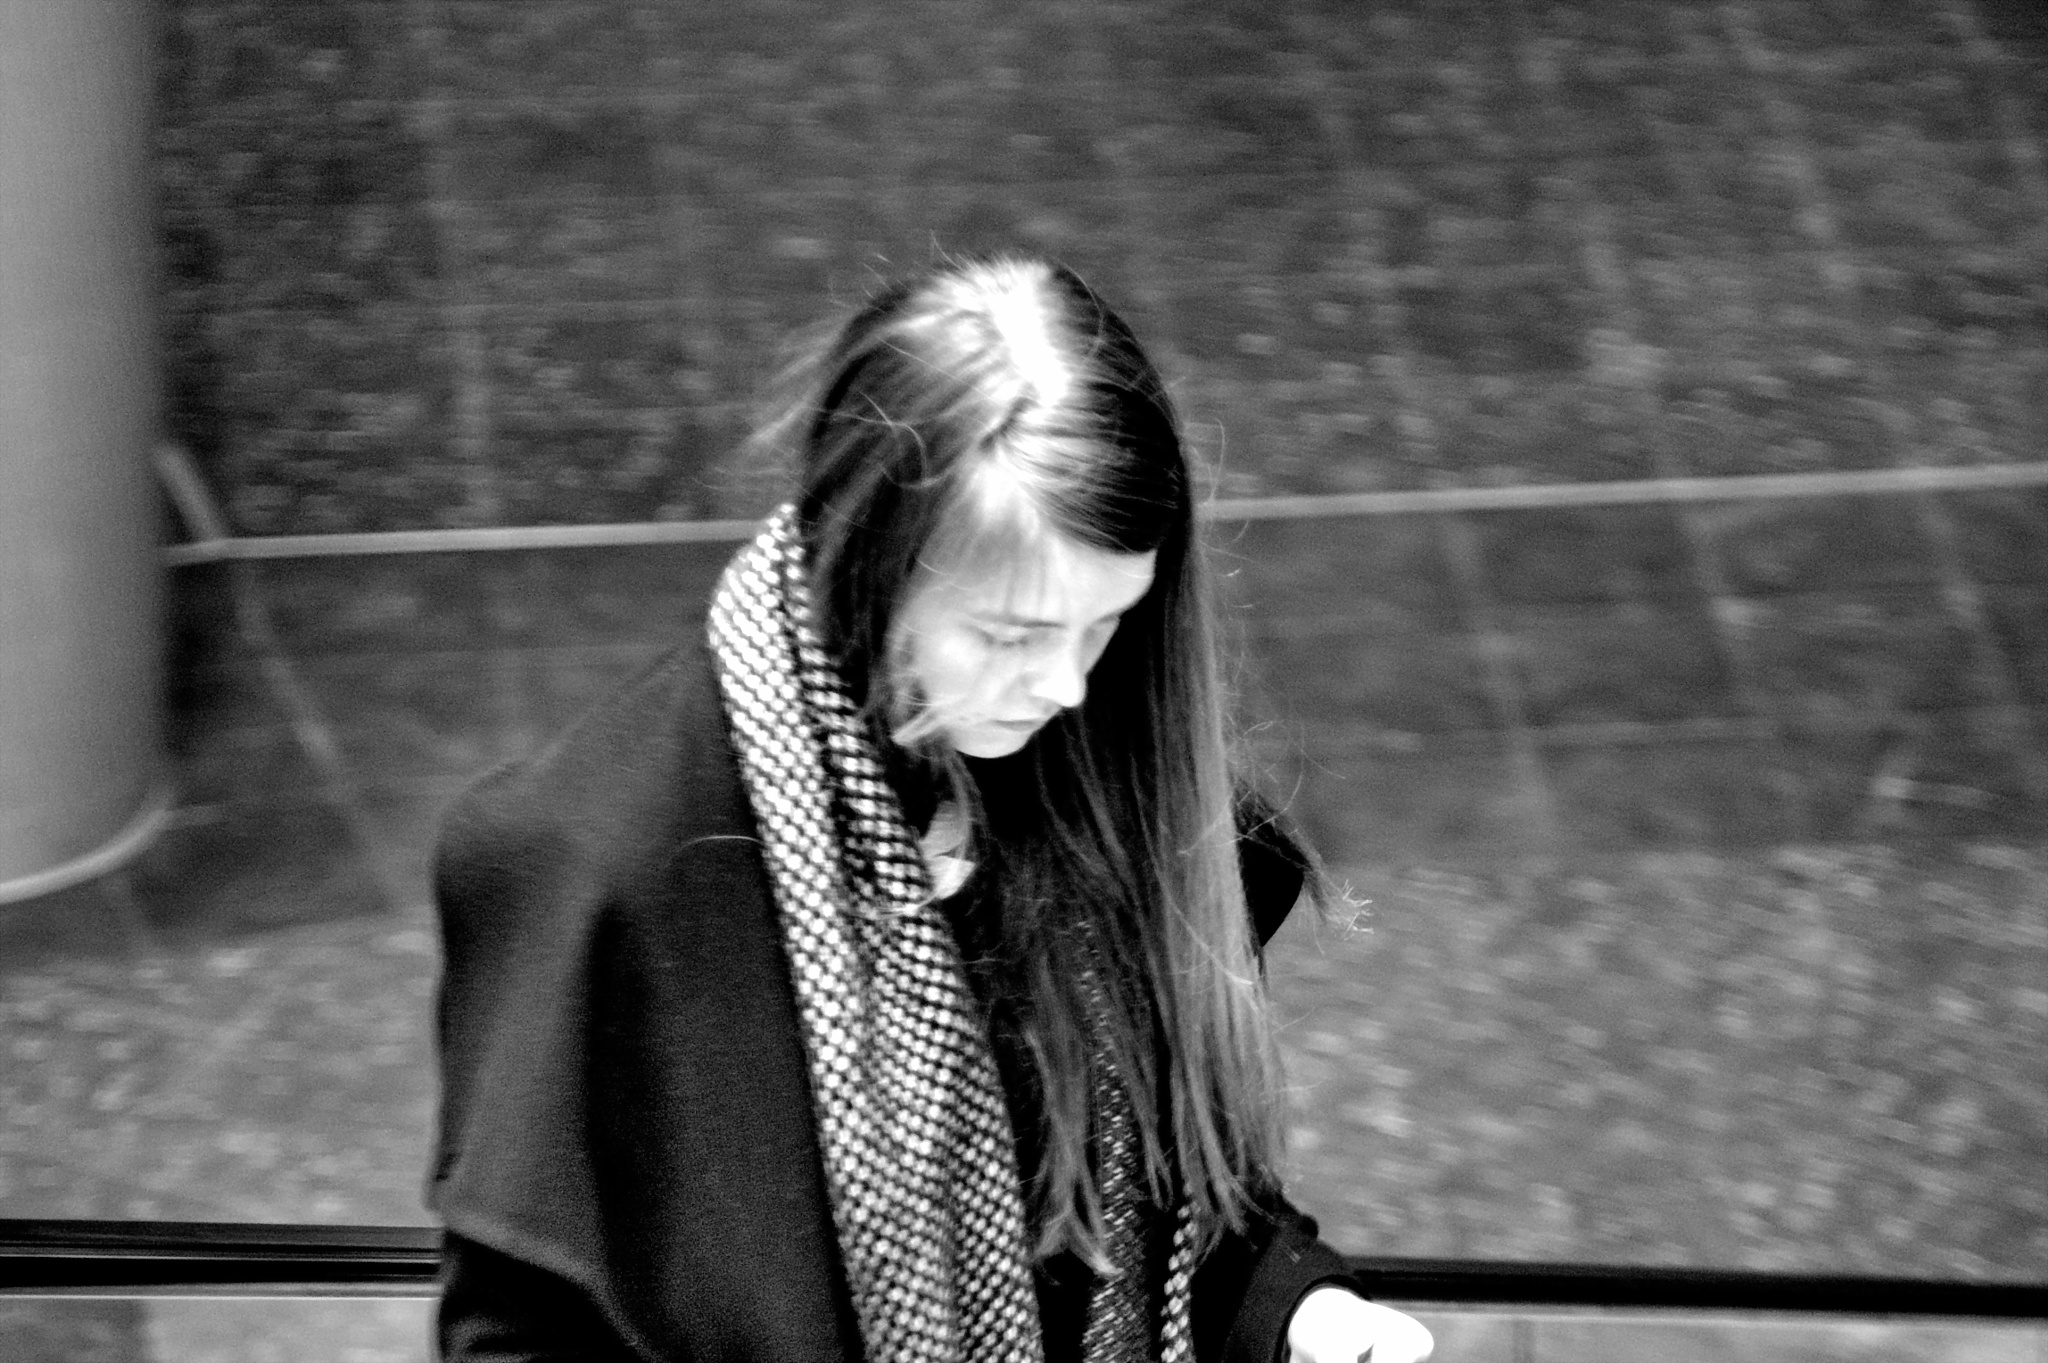 . . . .... concentrated and absorbed in the literature by Underground Photography